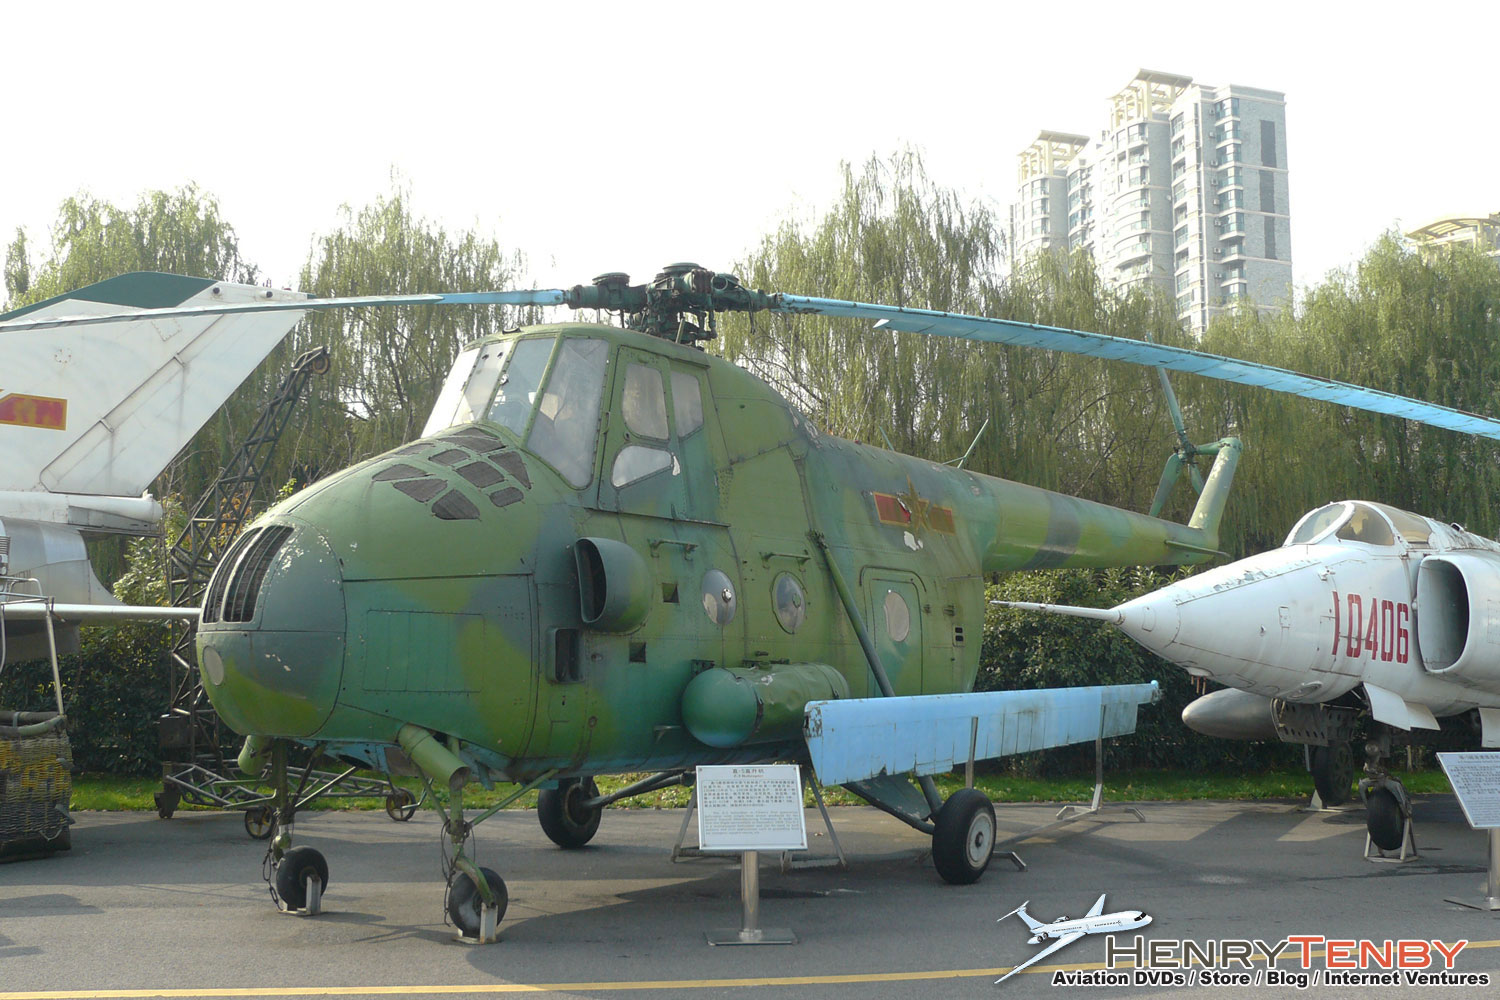 Shanghai Aviation Museum